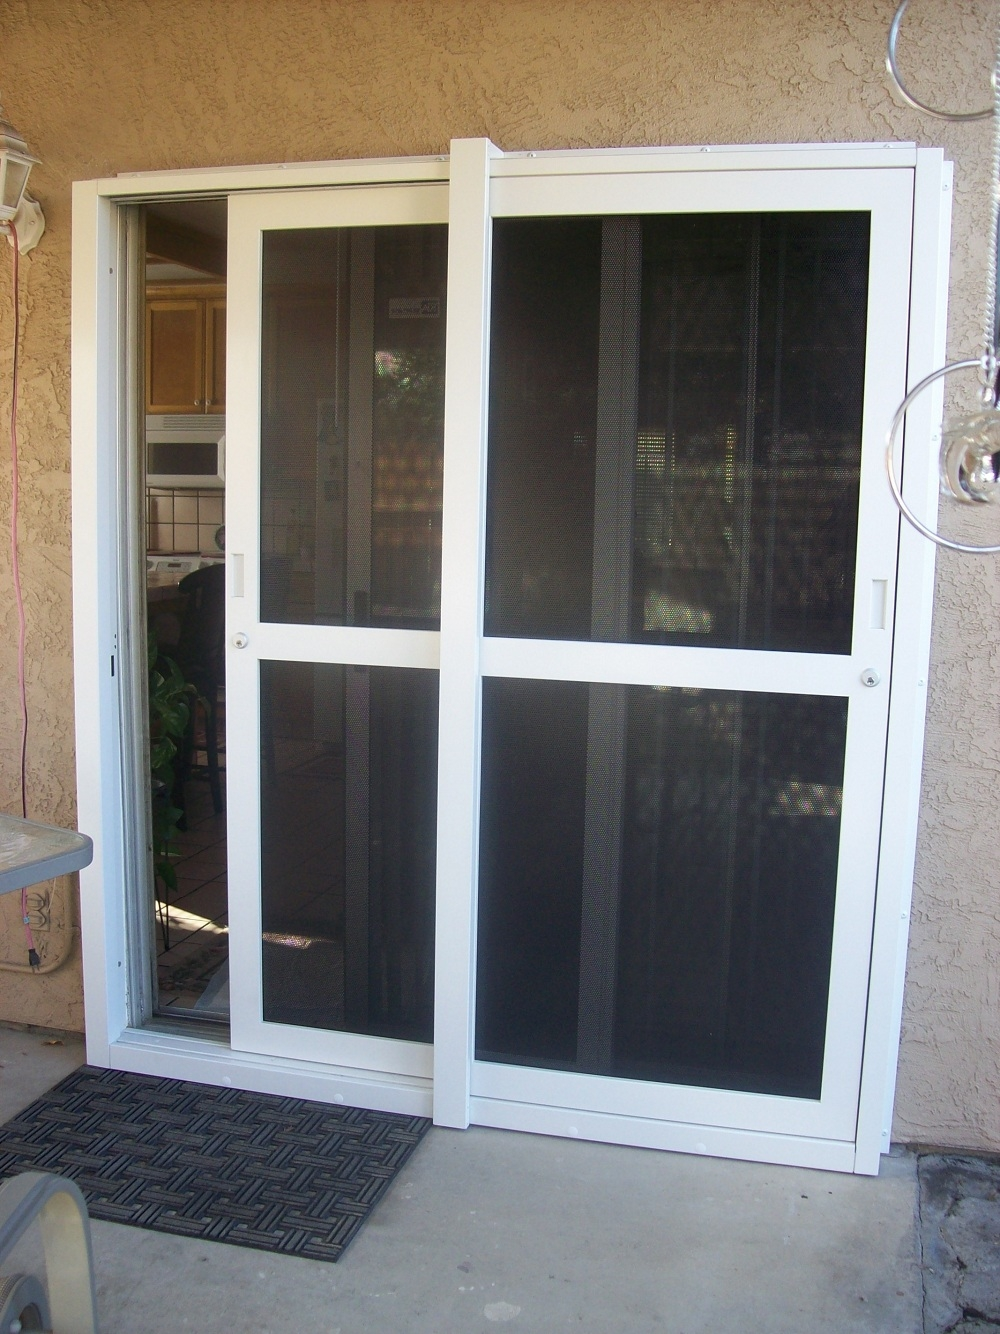 Security Screen Doors For Sliding Glass DoorsSecurity Screen Doors For Sliding Glass Doors